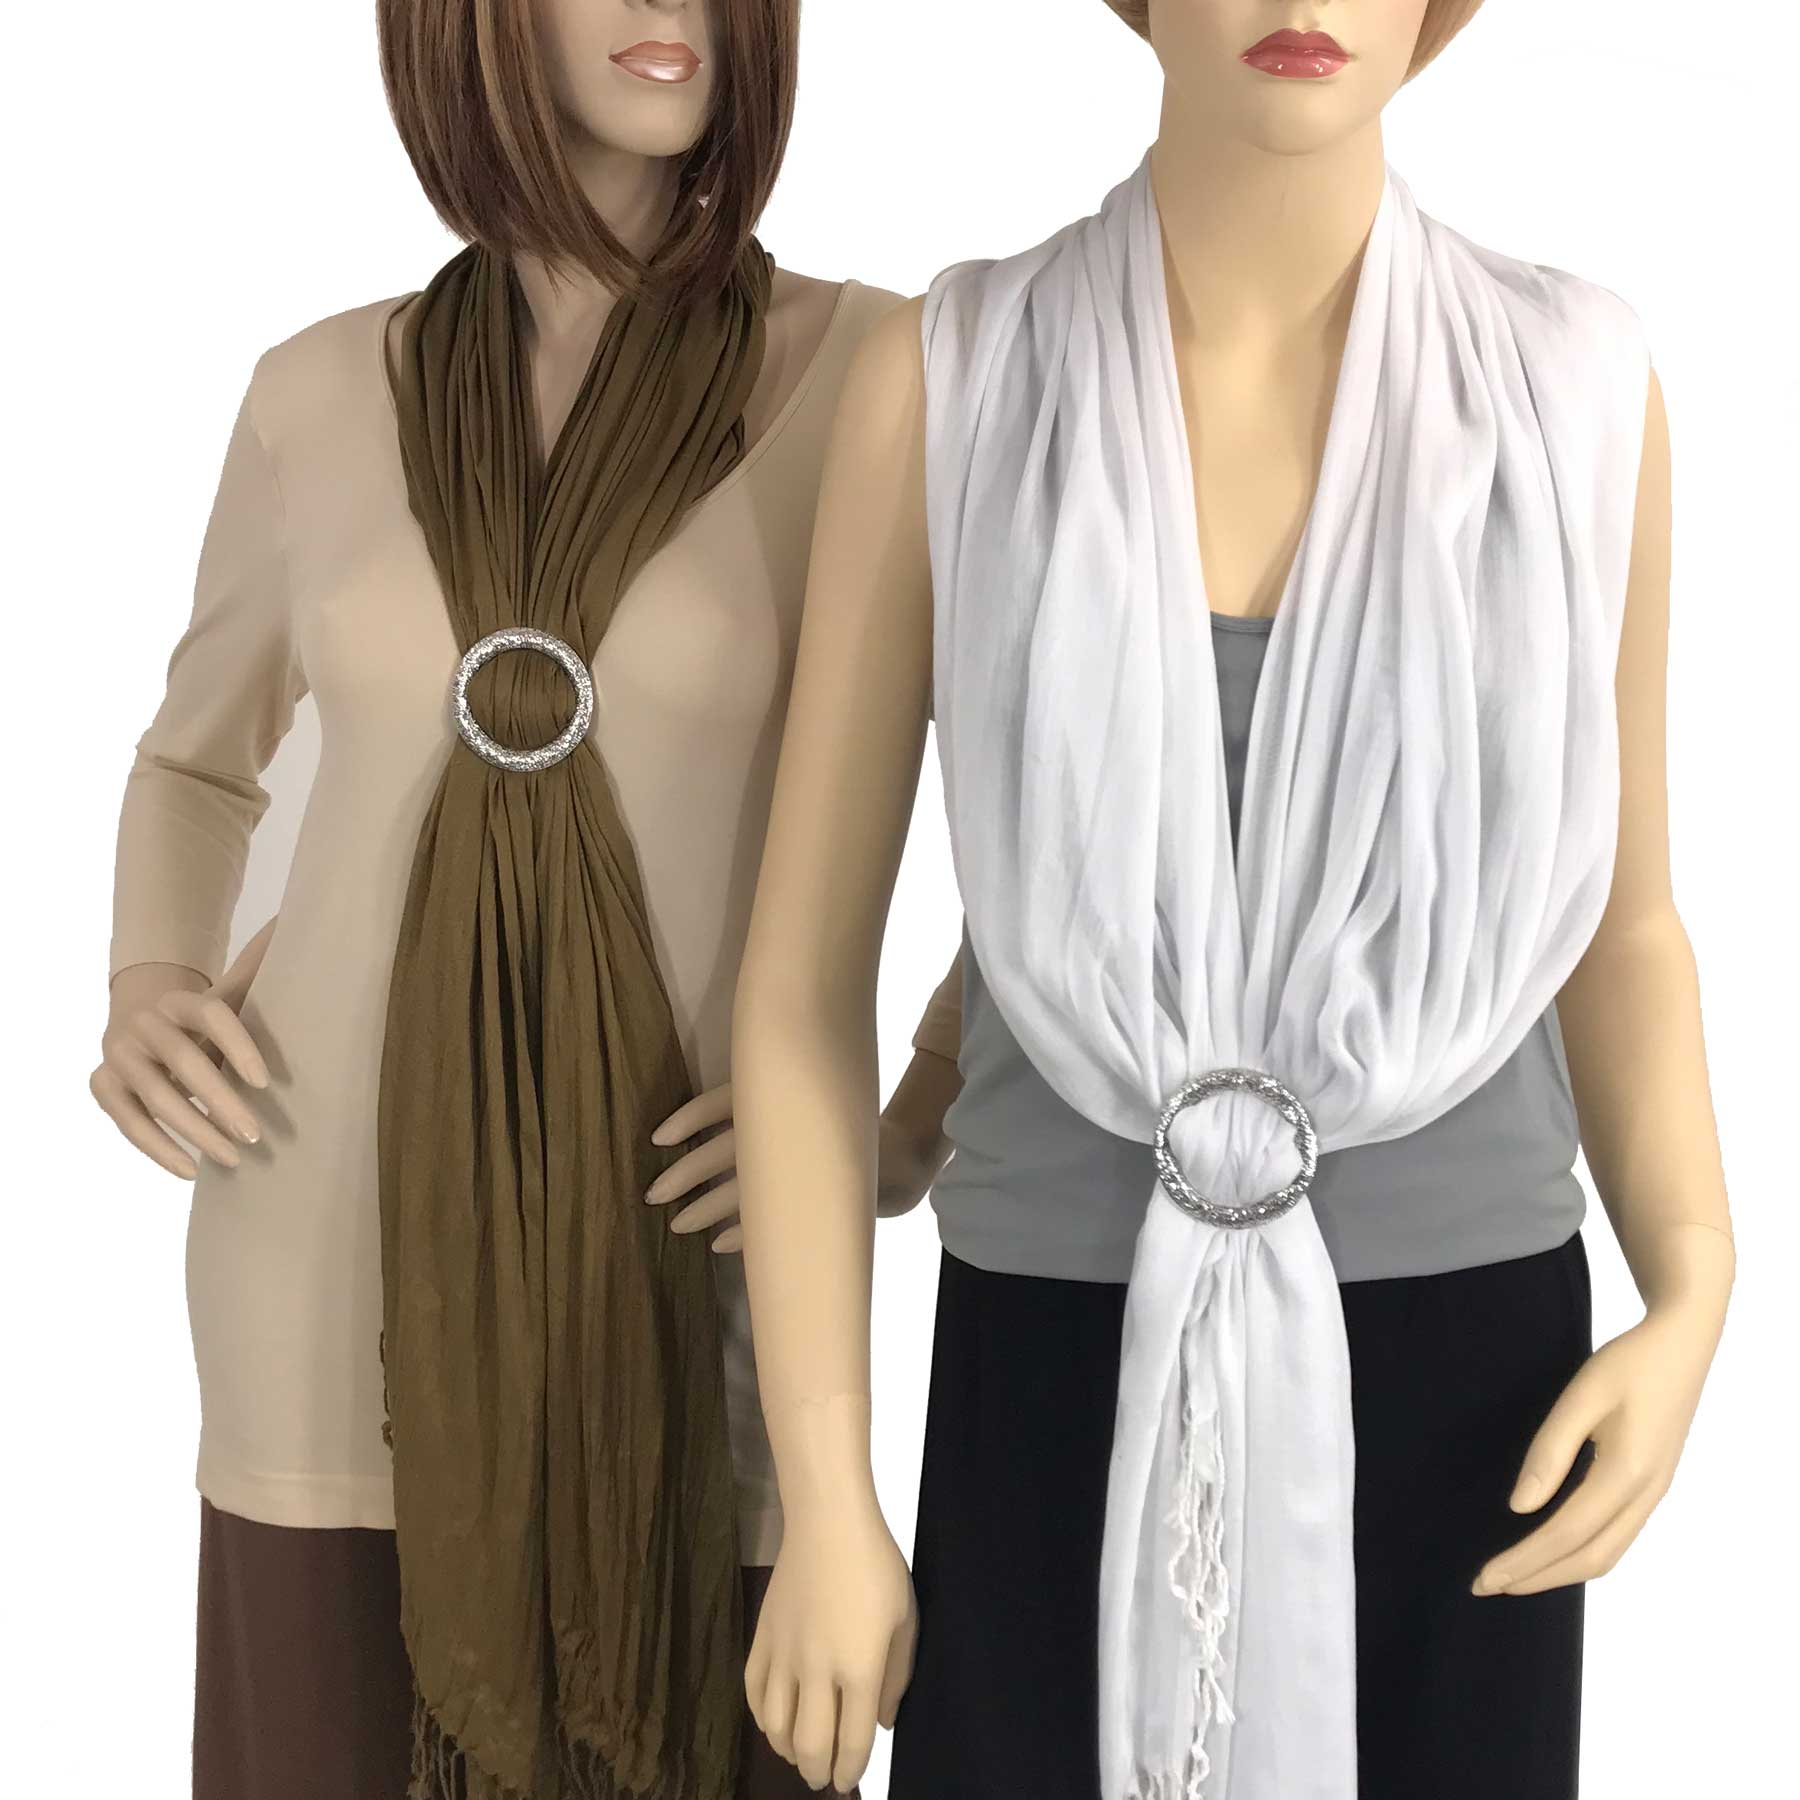 Shawl - Cotton/Silk #100 with Scarf Buckle Ring